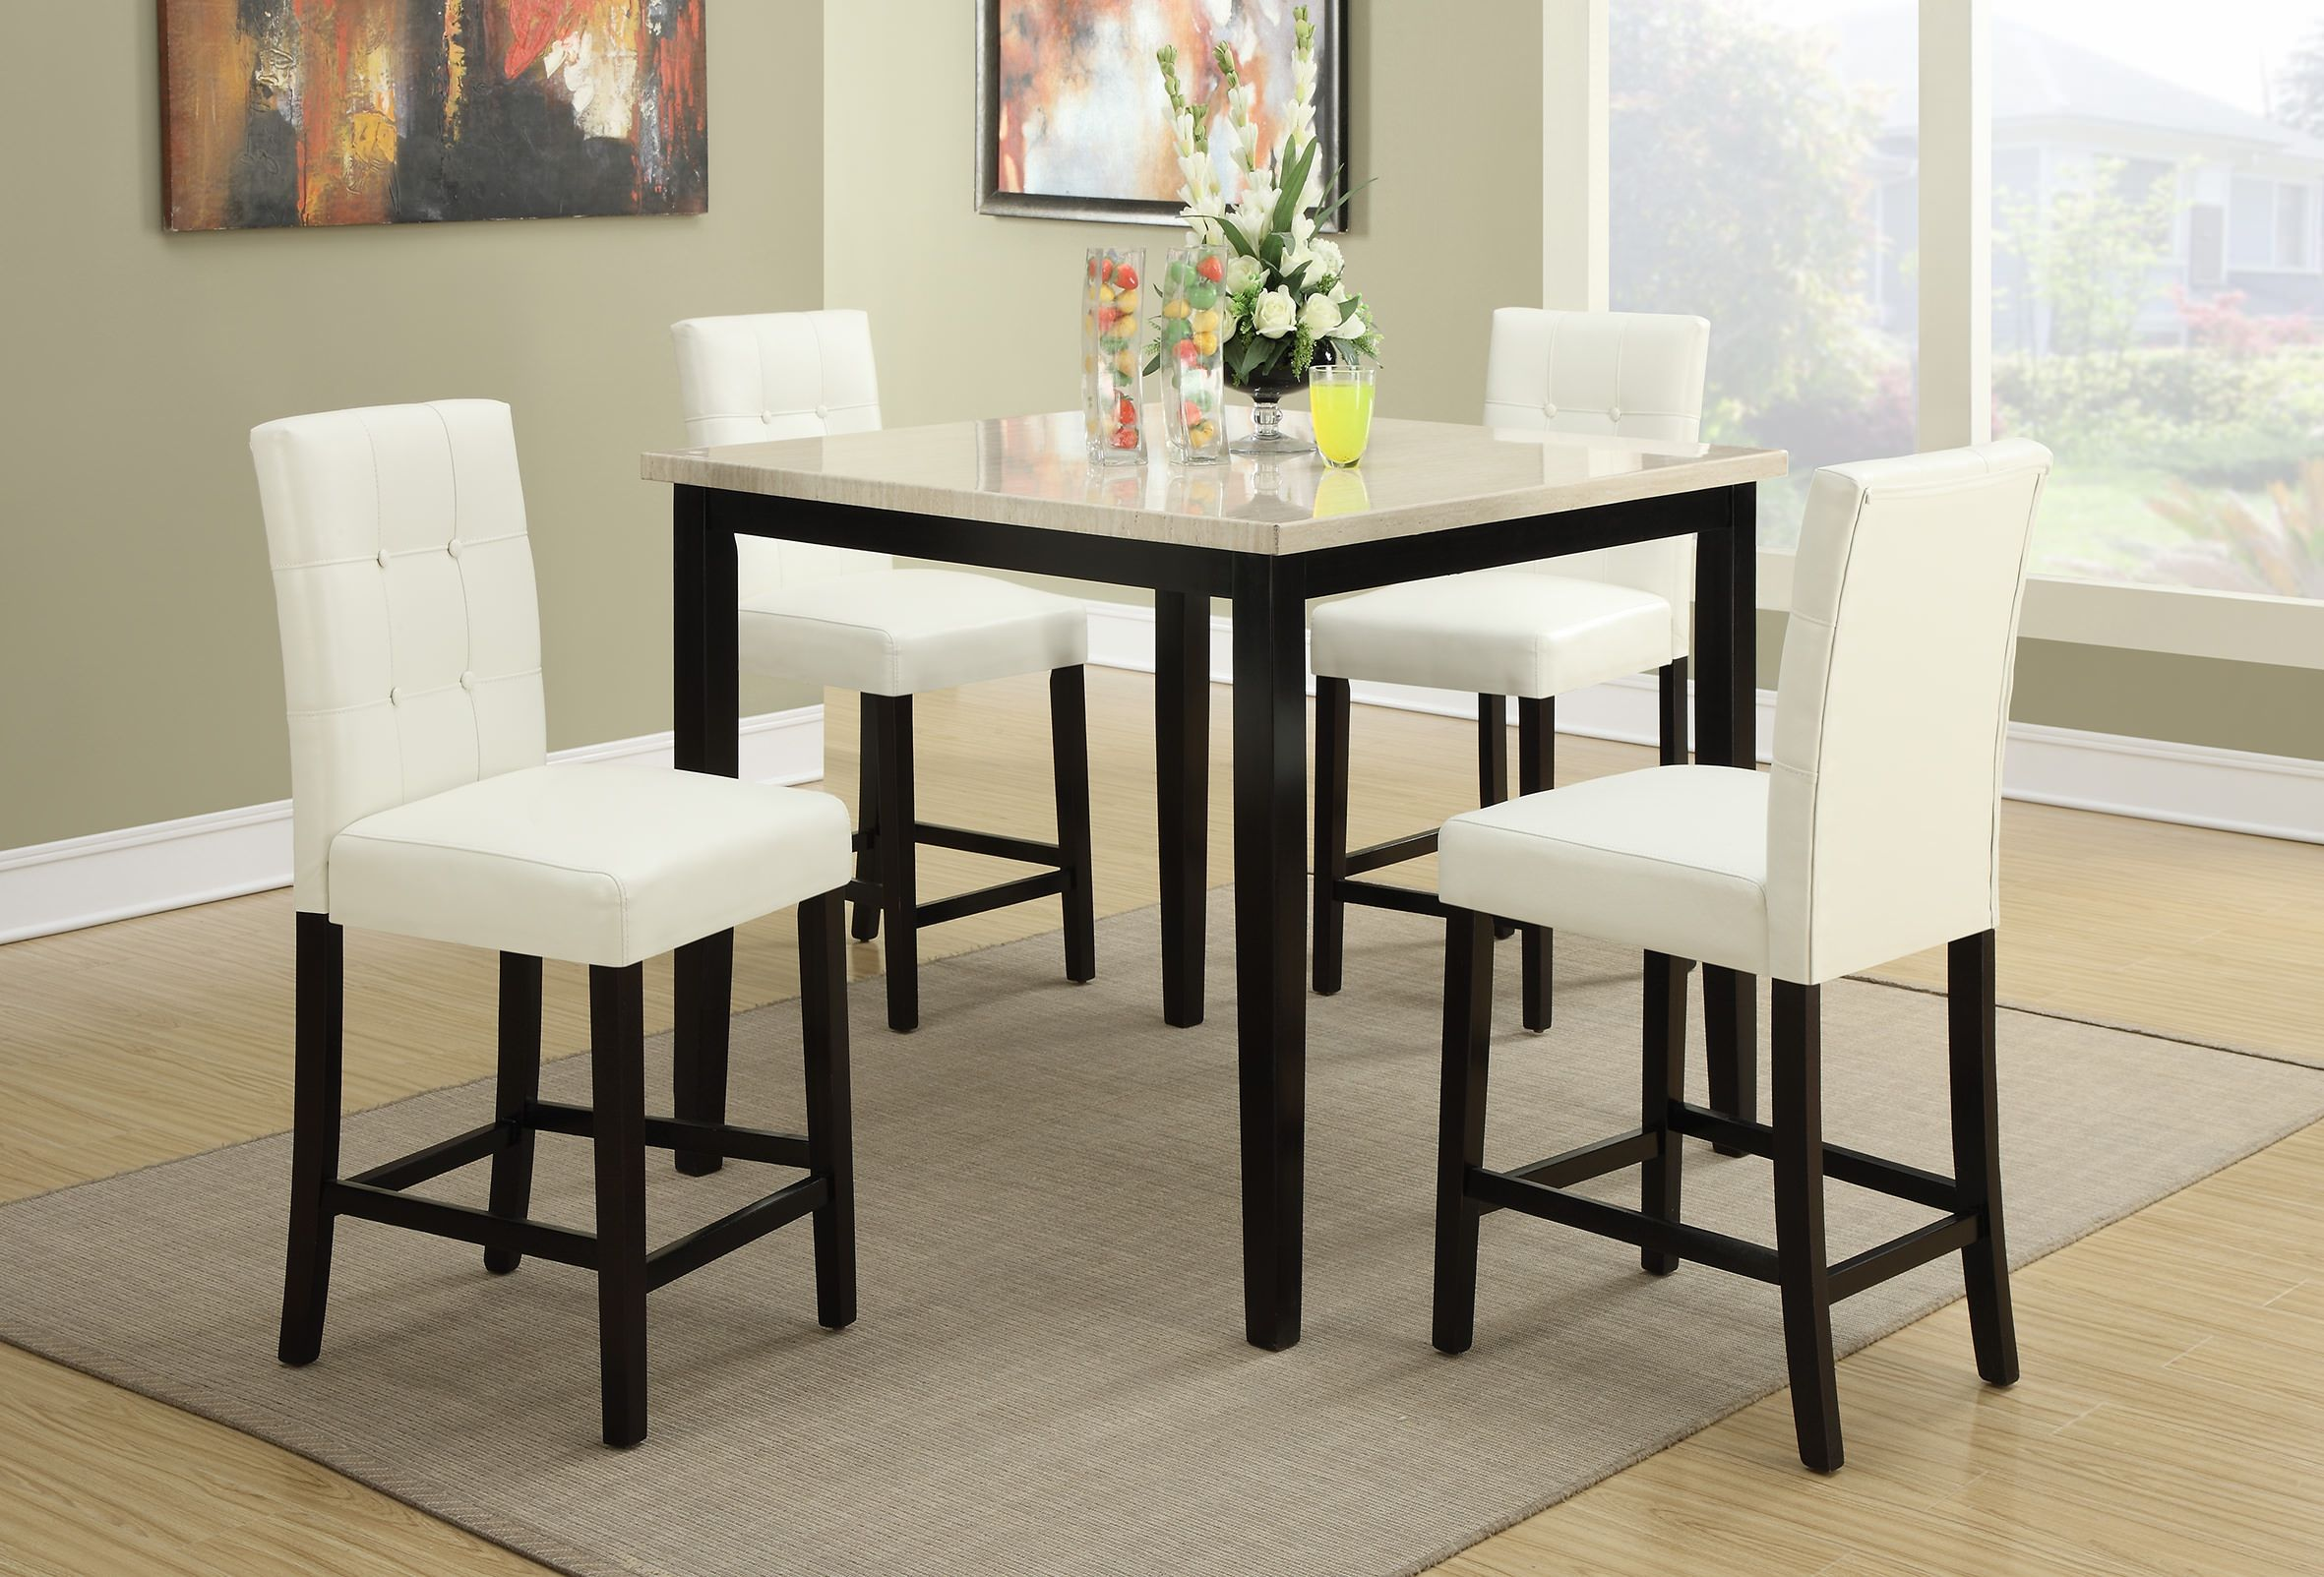 Bar Height Table And Chairs F2338 F1148 5 Pcs Counter Height Set By Poundex In 2019